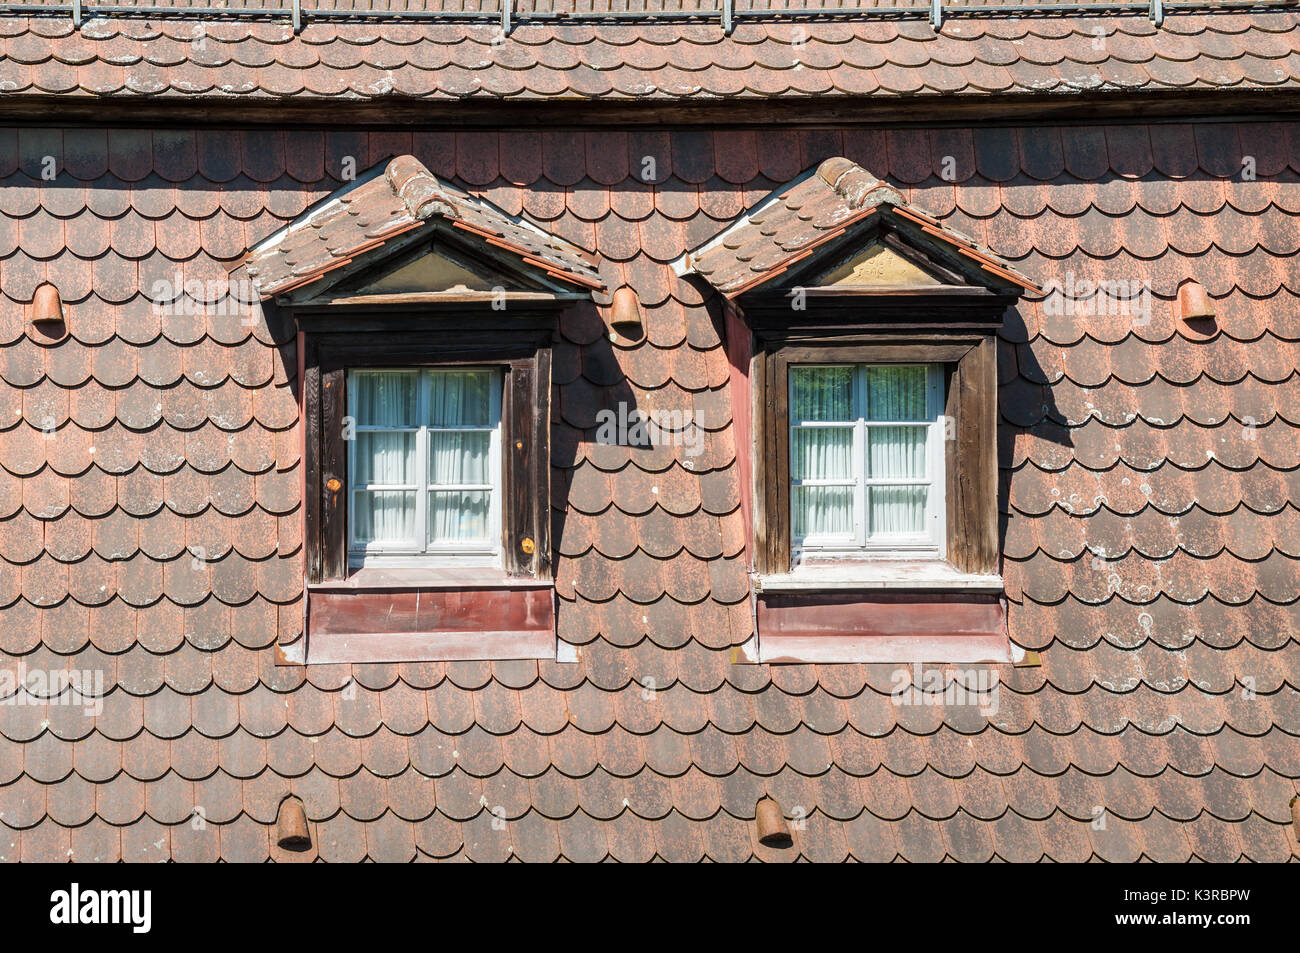 Bamberg, Germany - May 22, 2016: Traditional windows on the tiled roof of old half-timbered colorful house close Stock Photo